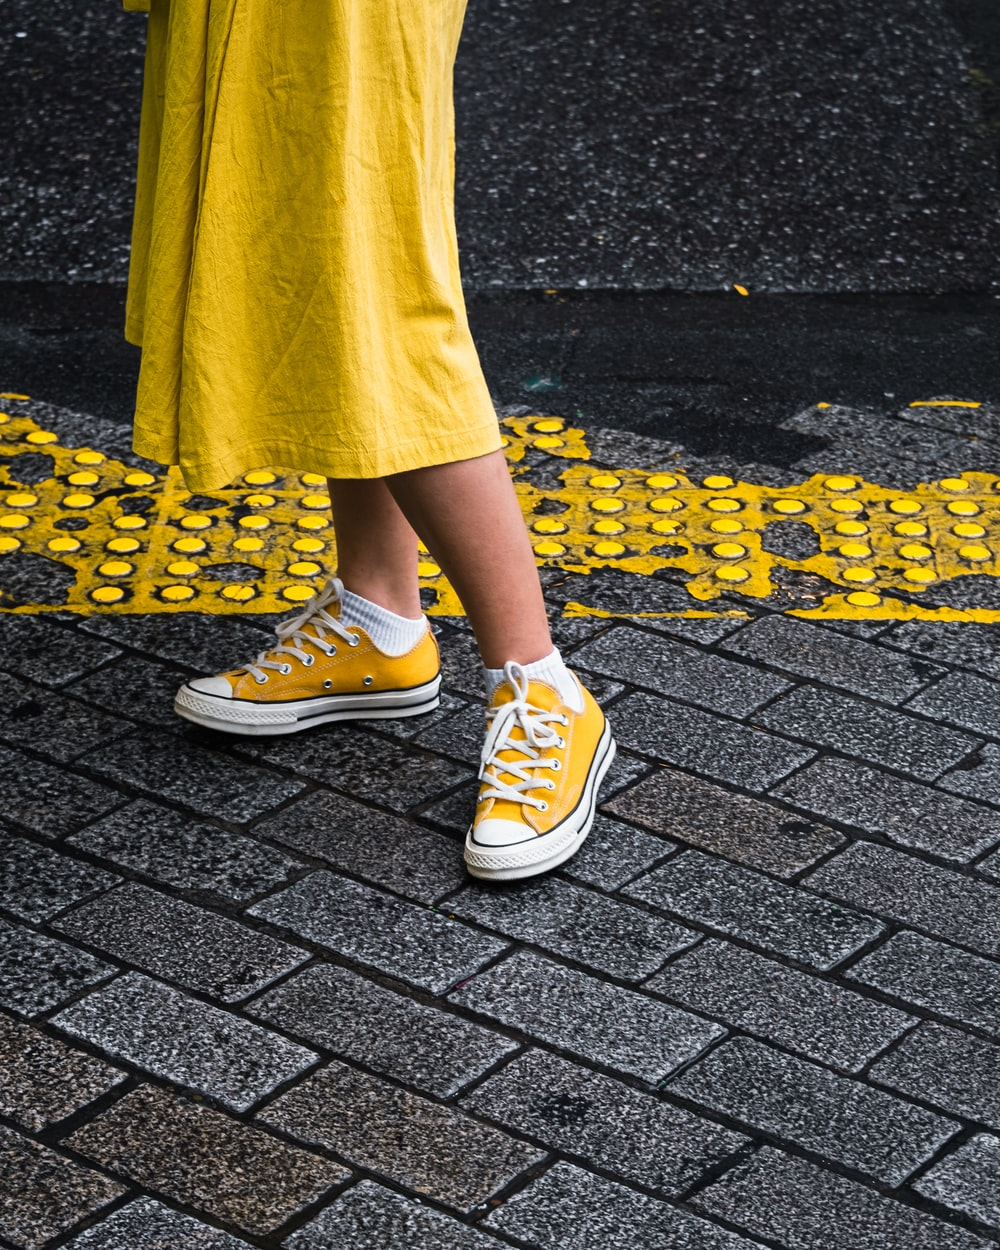 person wearing yellow maxi dress and yellow Converse low-top sneaker